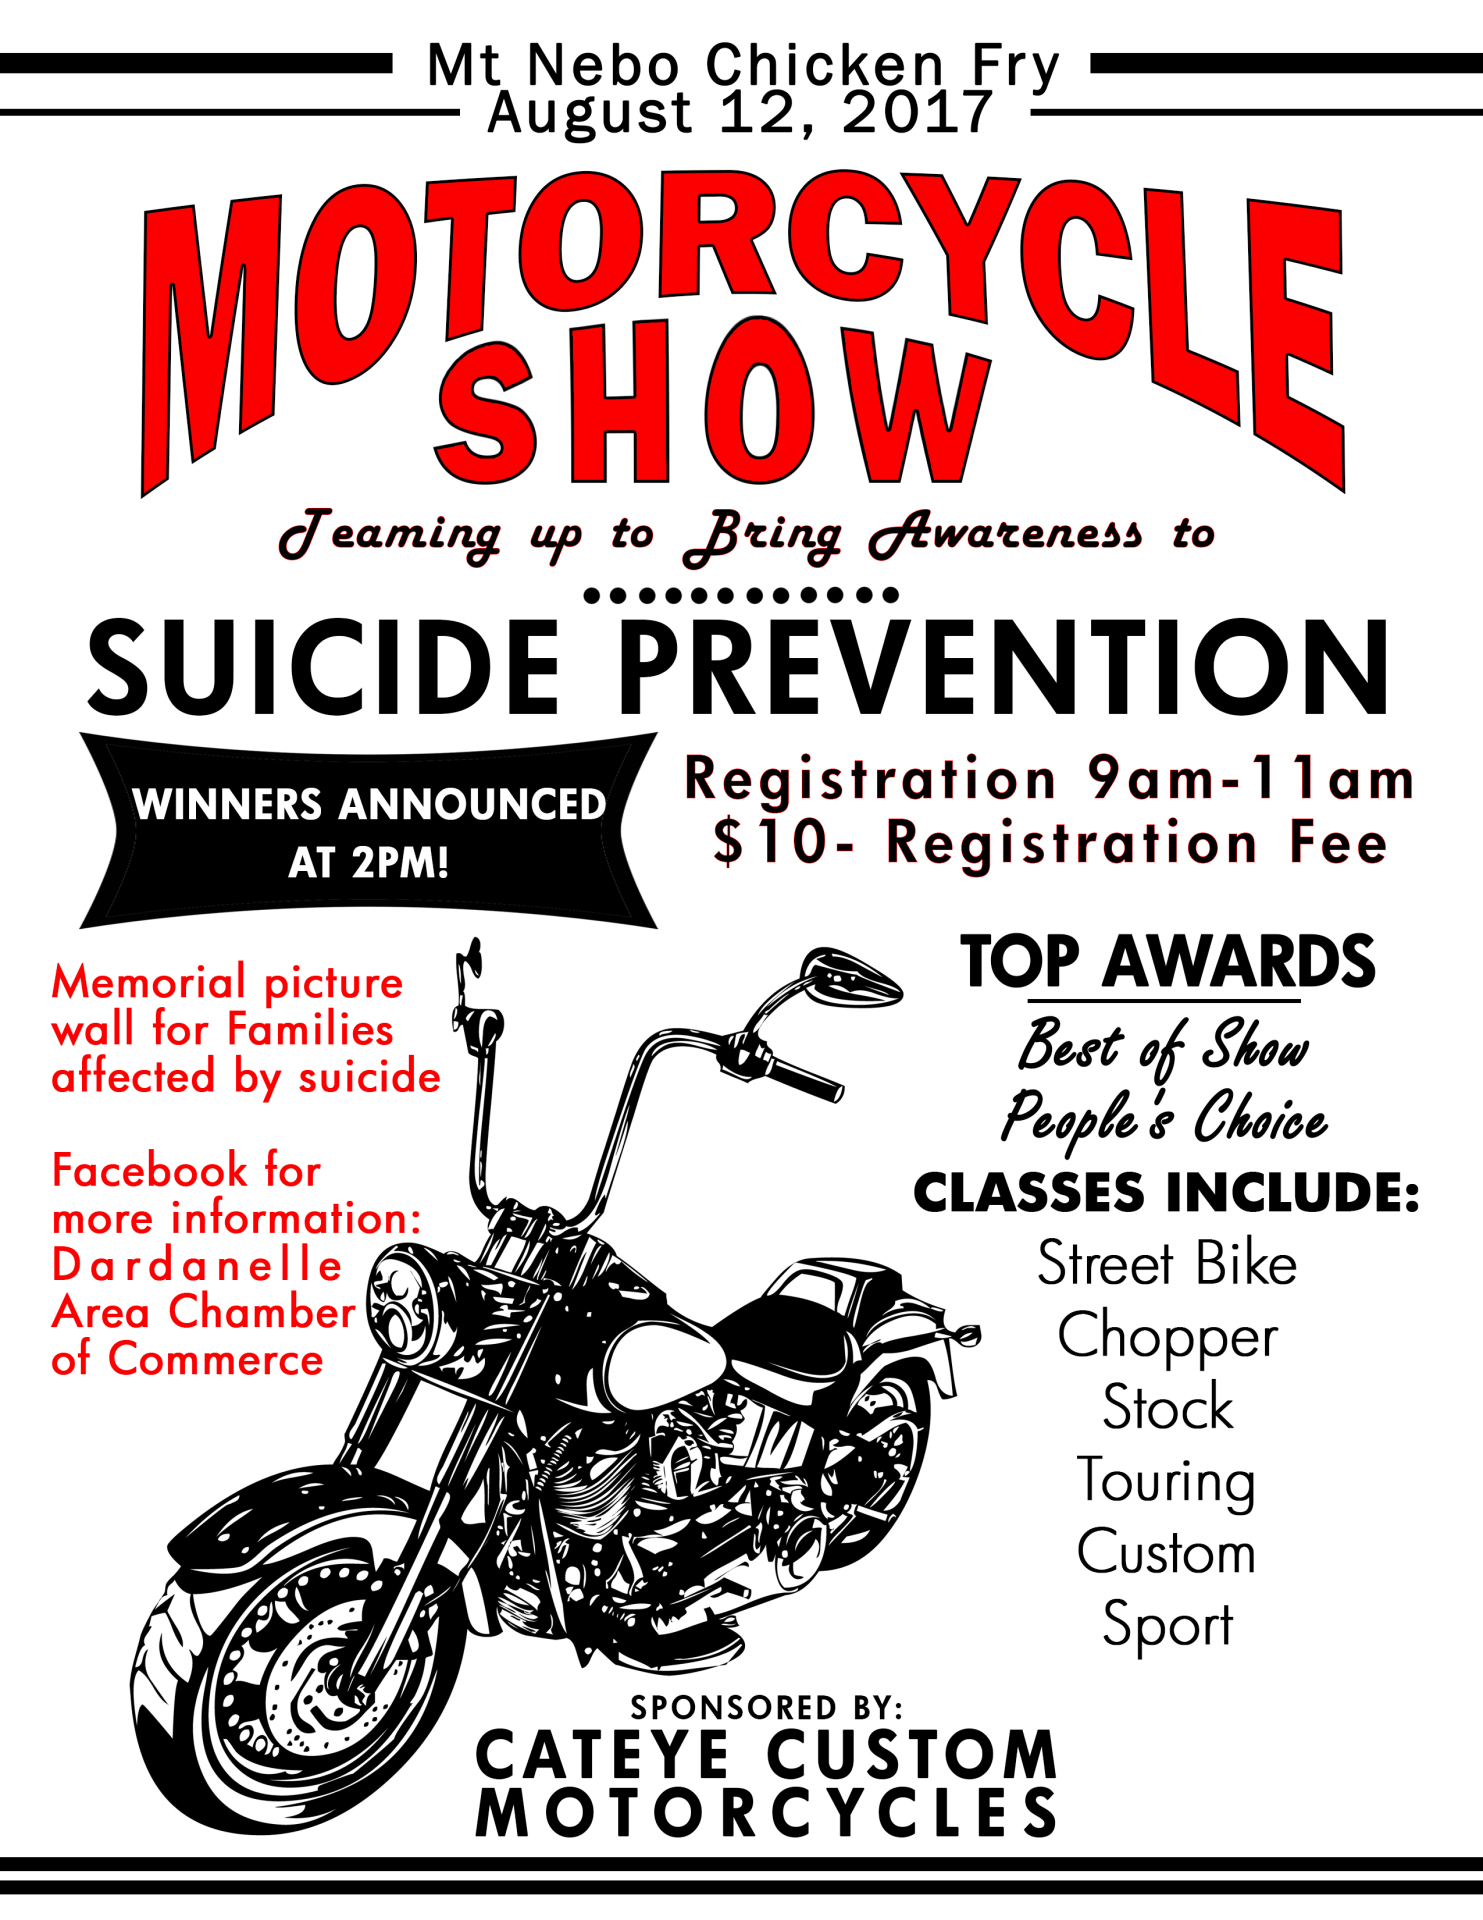 Motorcycle Show at Mt Nebo Chicken Fry